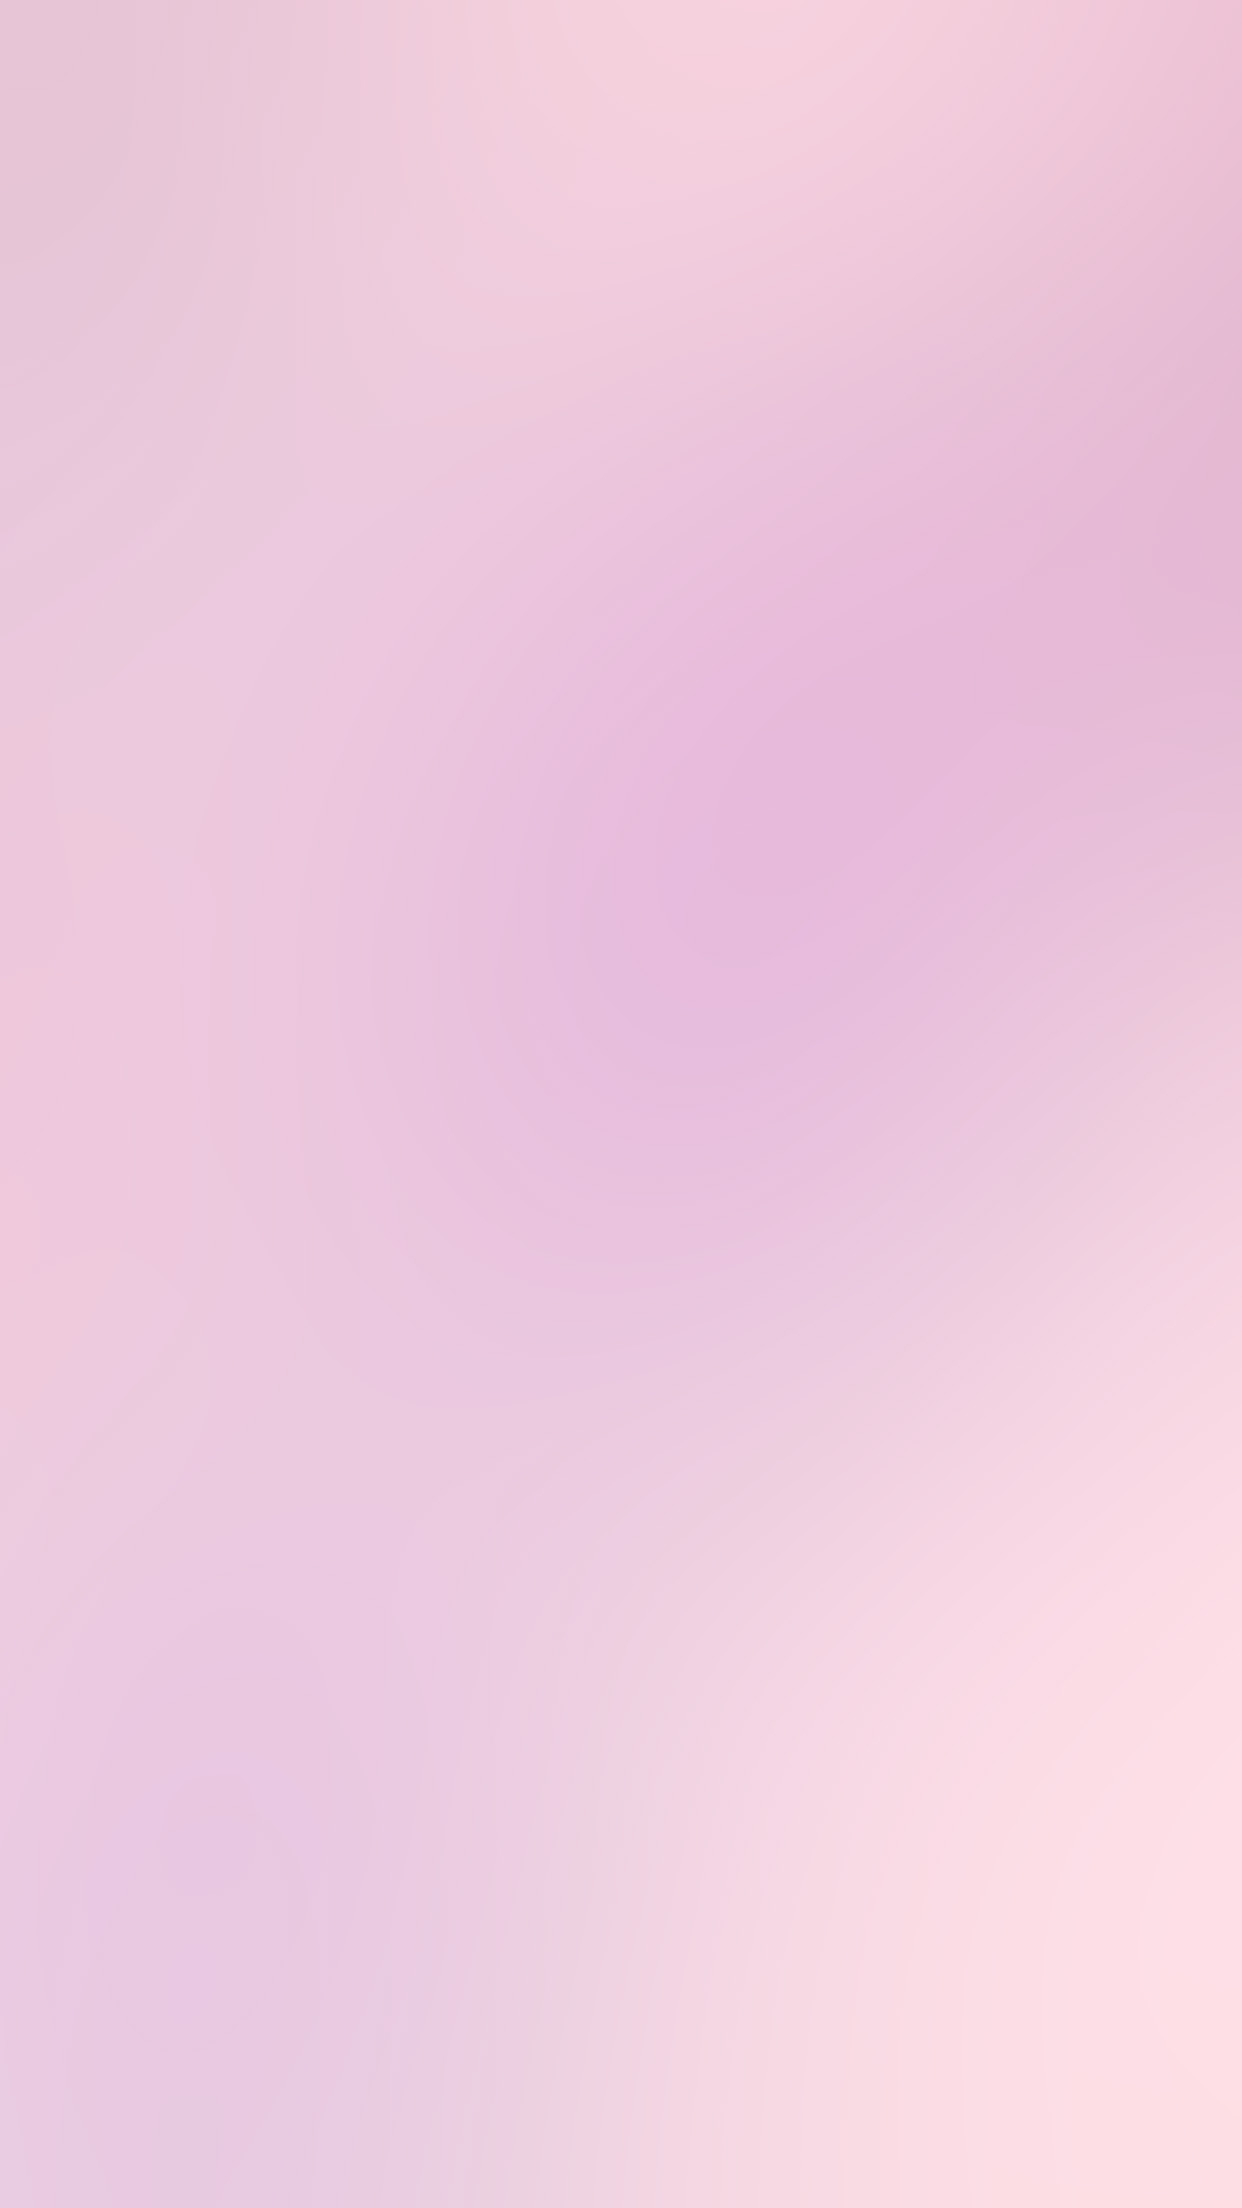 Plain Light Pink Background